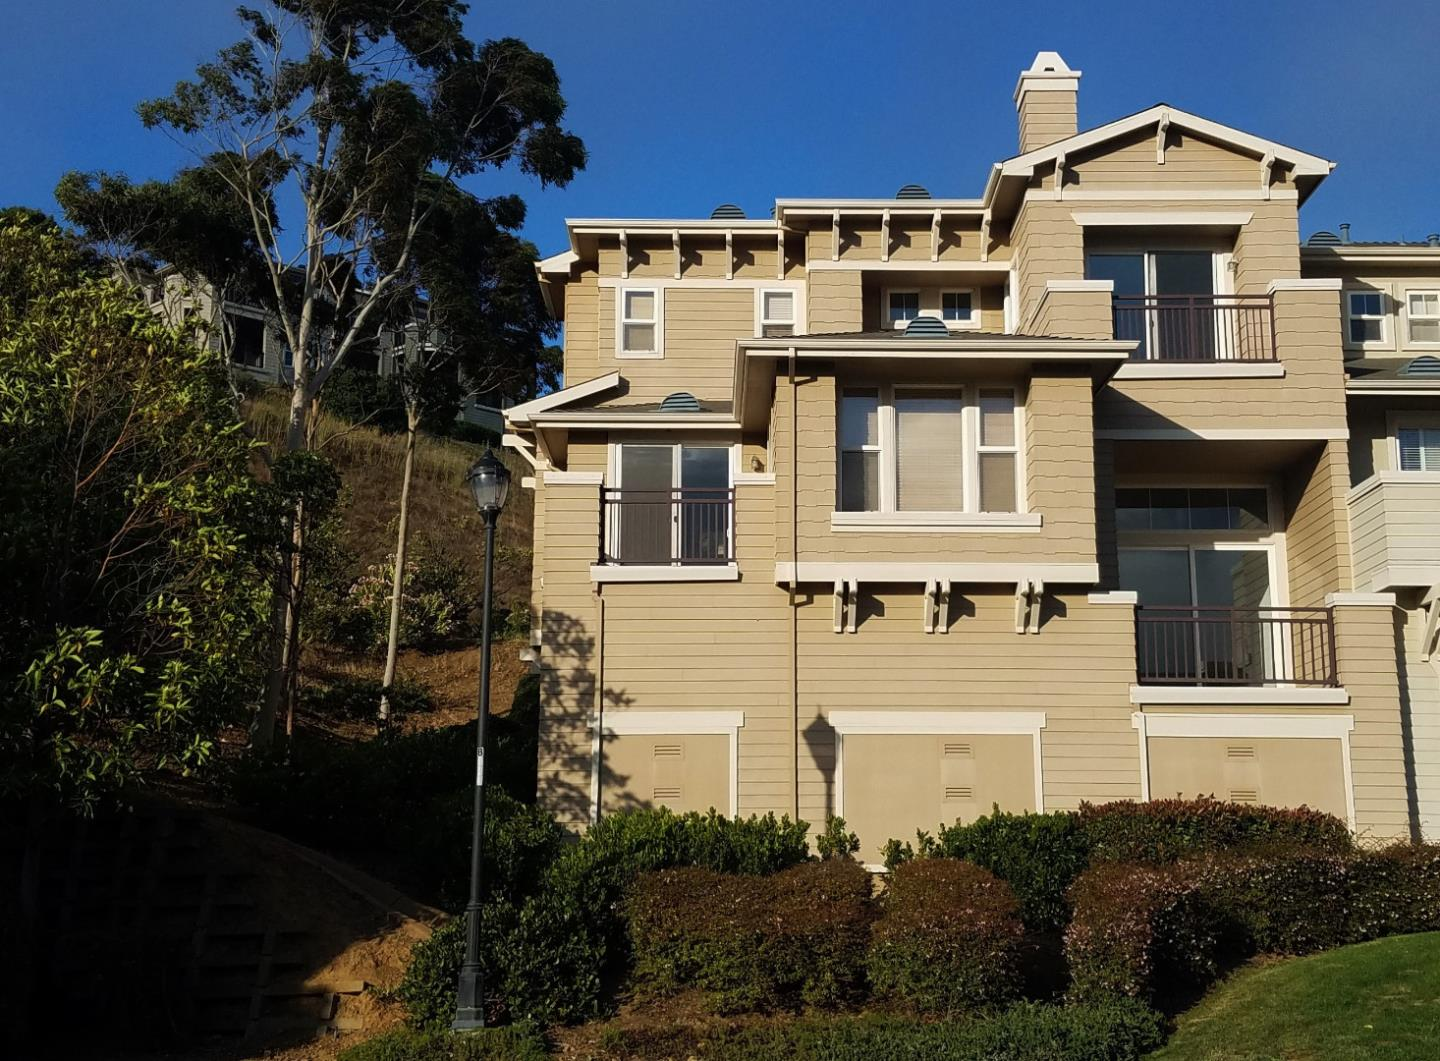 Townhouse for Sale at 225 Fox Sparrow Lane Brisbane, California 94005 United States